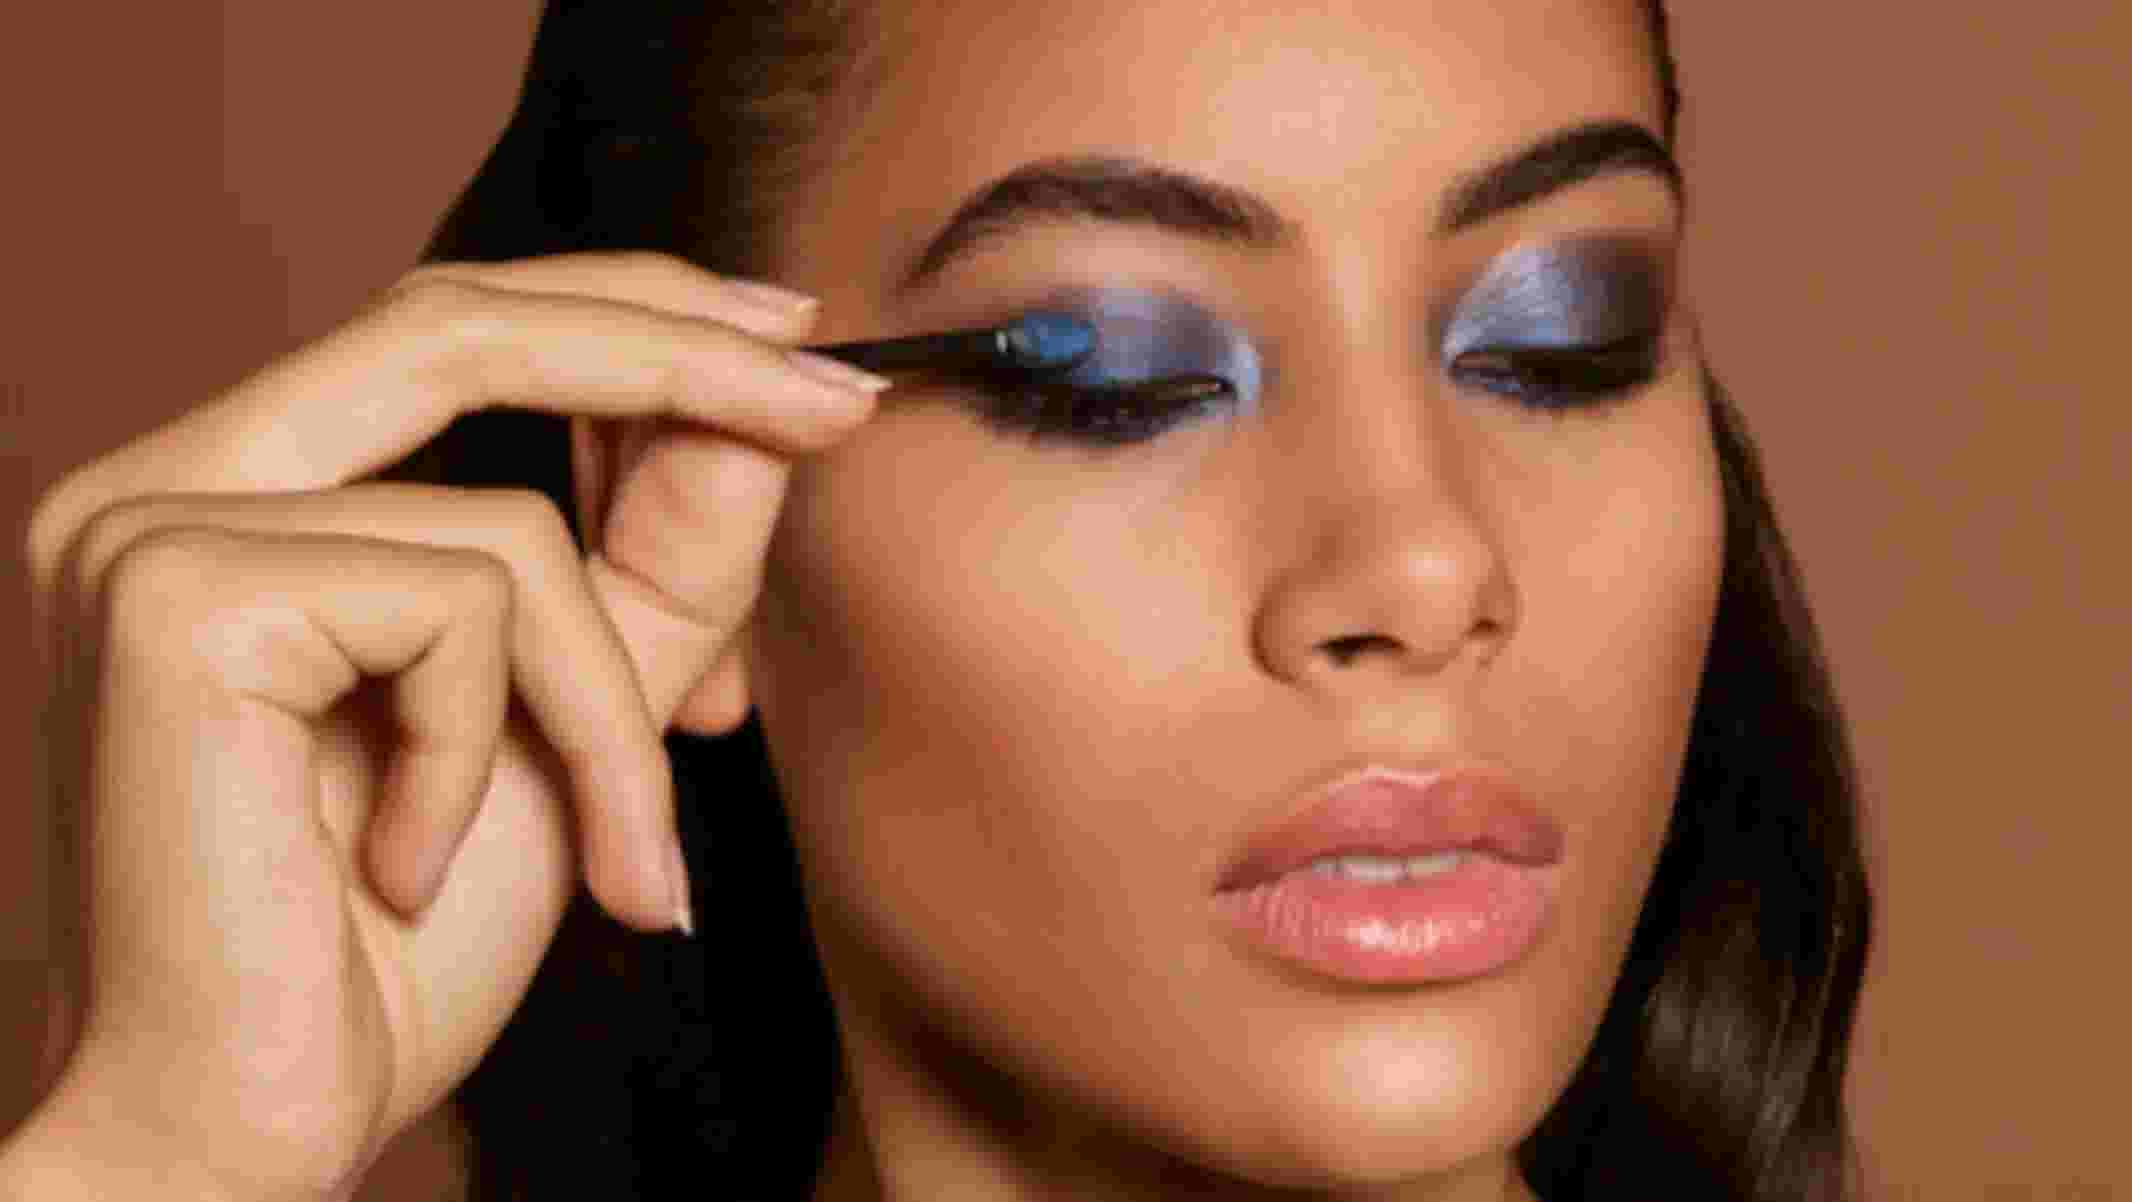 How To Apply Eyeshadow The Makeup Artist Way